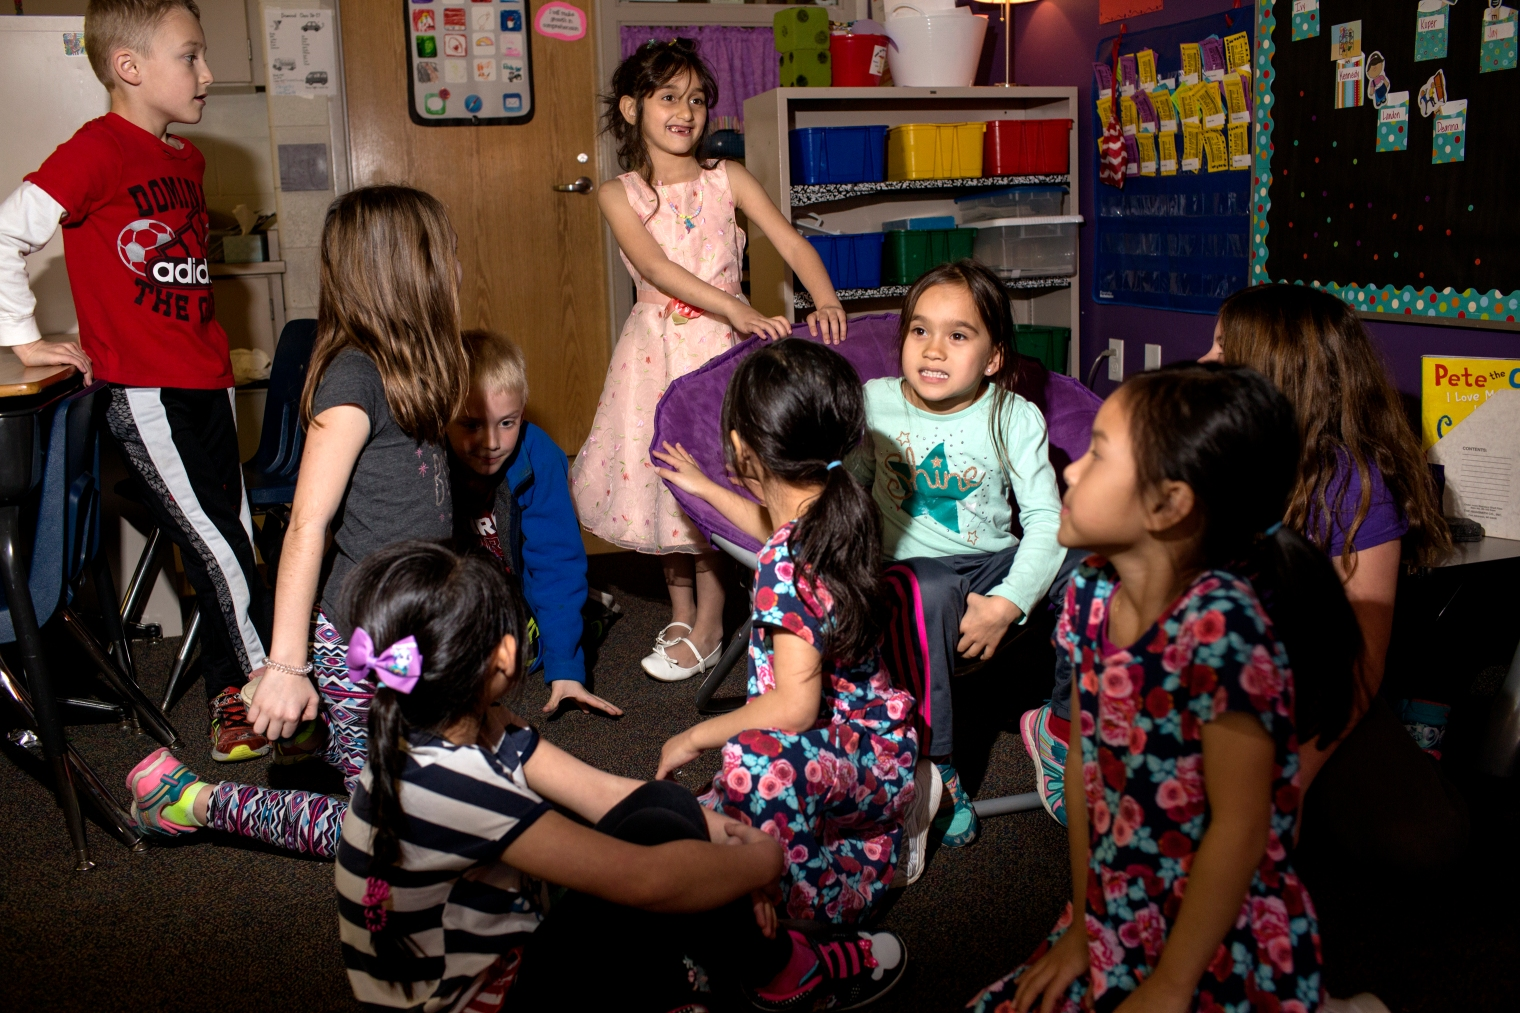 Hala Tameem during class at her new elementary school in the Waukee school district. Waukee is a suburb on Des Moines, Iowa.